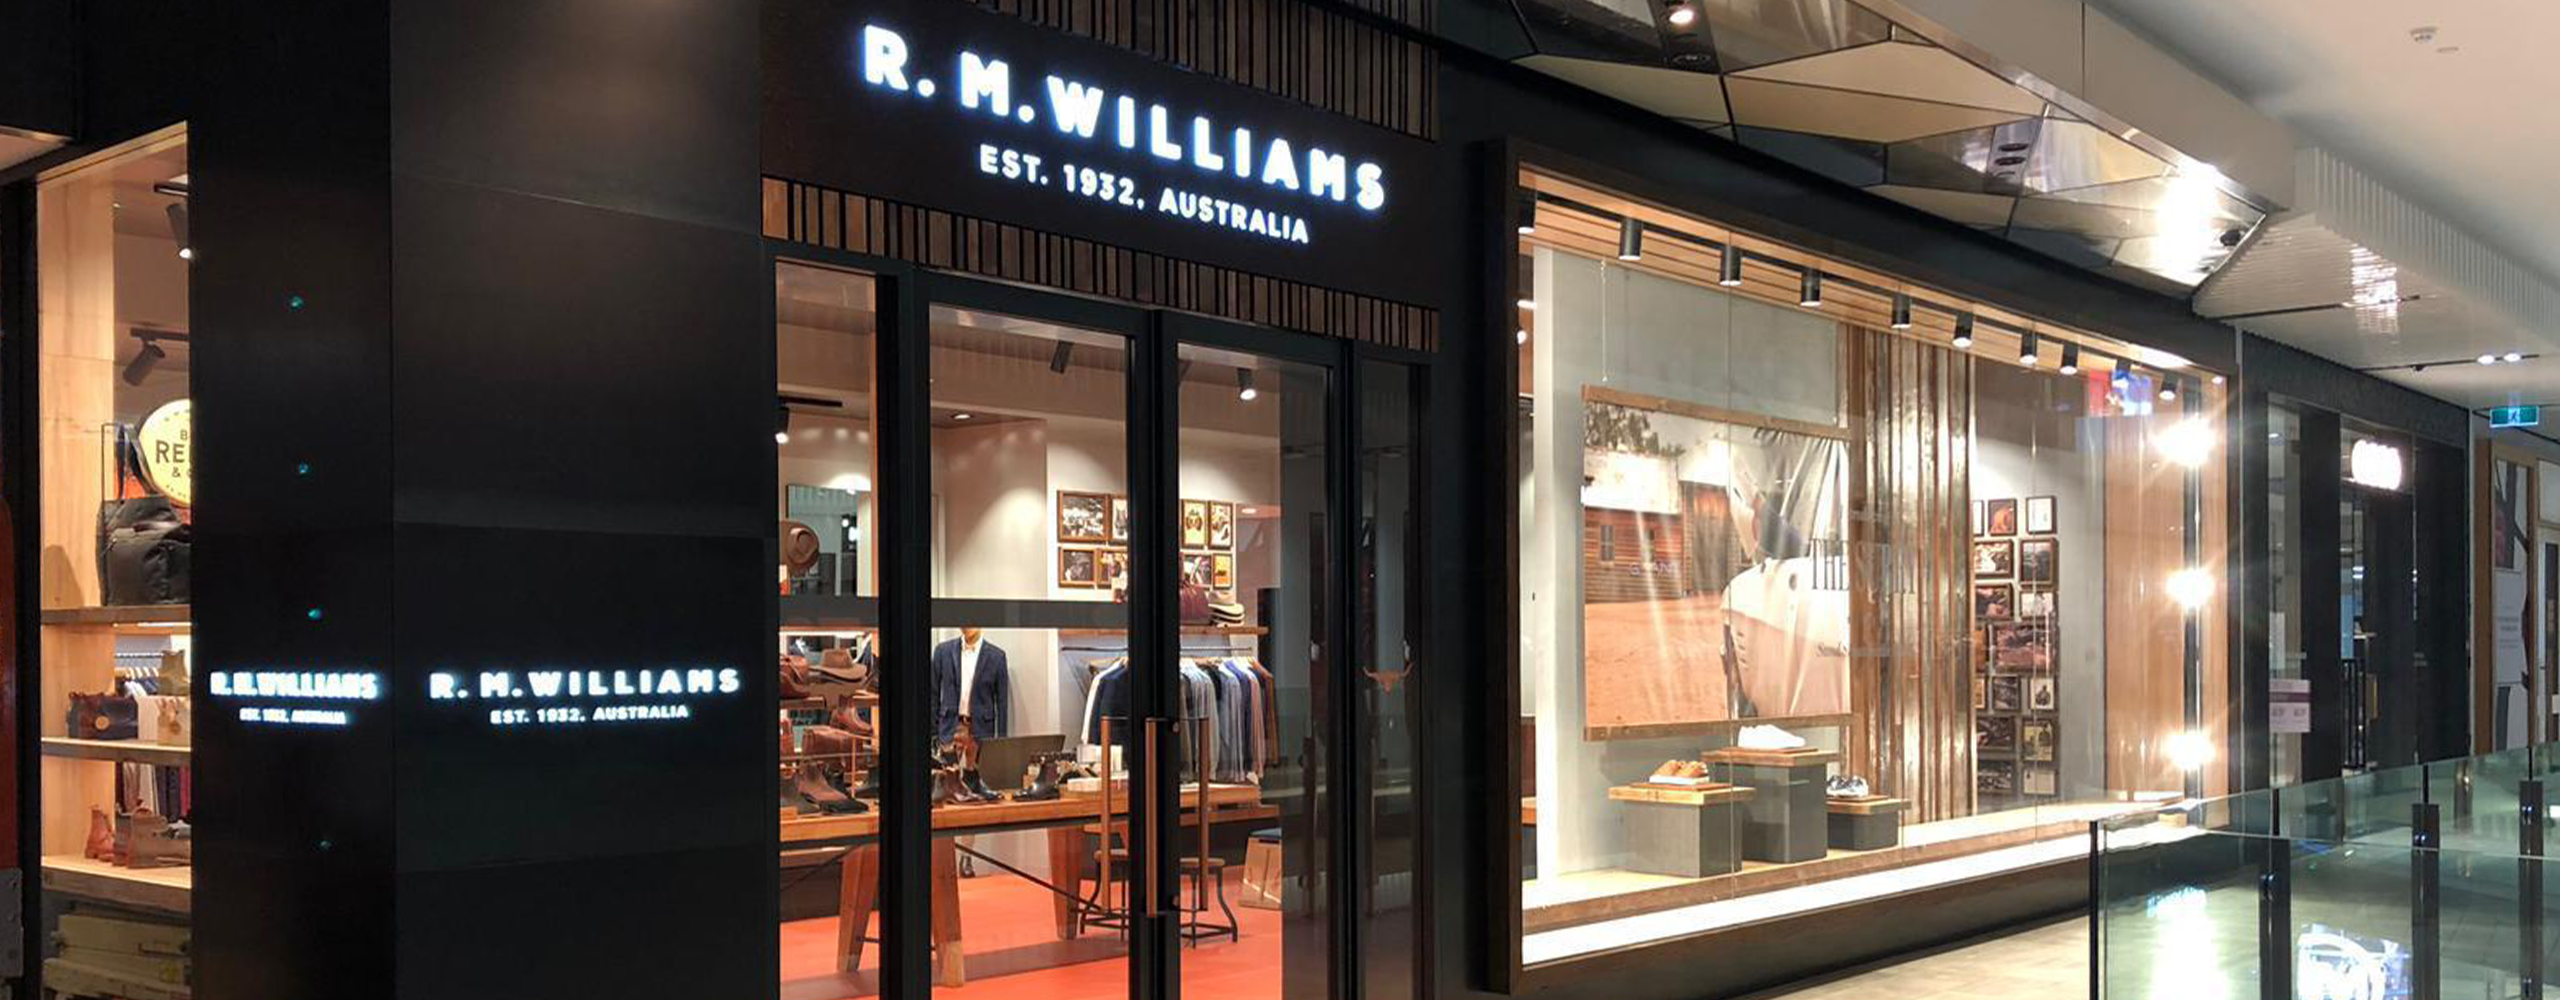 Emporium R.M.Williams Store